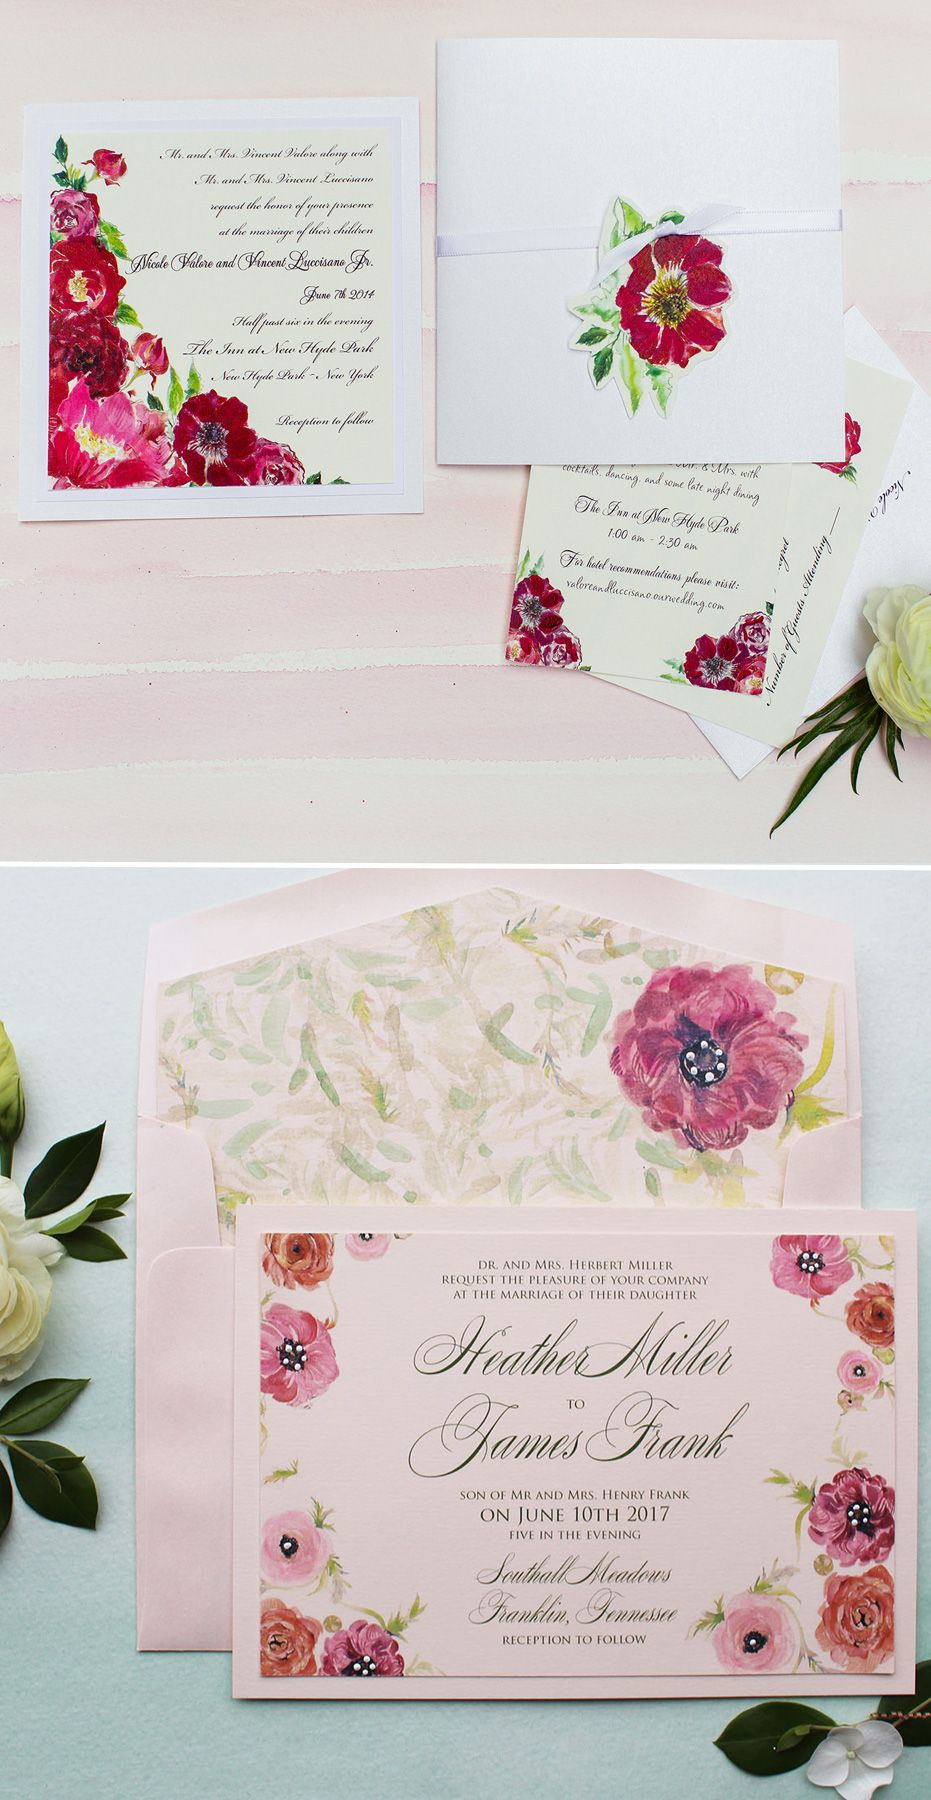 Fuchsia Ranunculus and Anemone Hand Painted Wedding Invitations  #momentaldesigns #handpainted #weddinginvitations #watercolorweddinginvitations